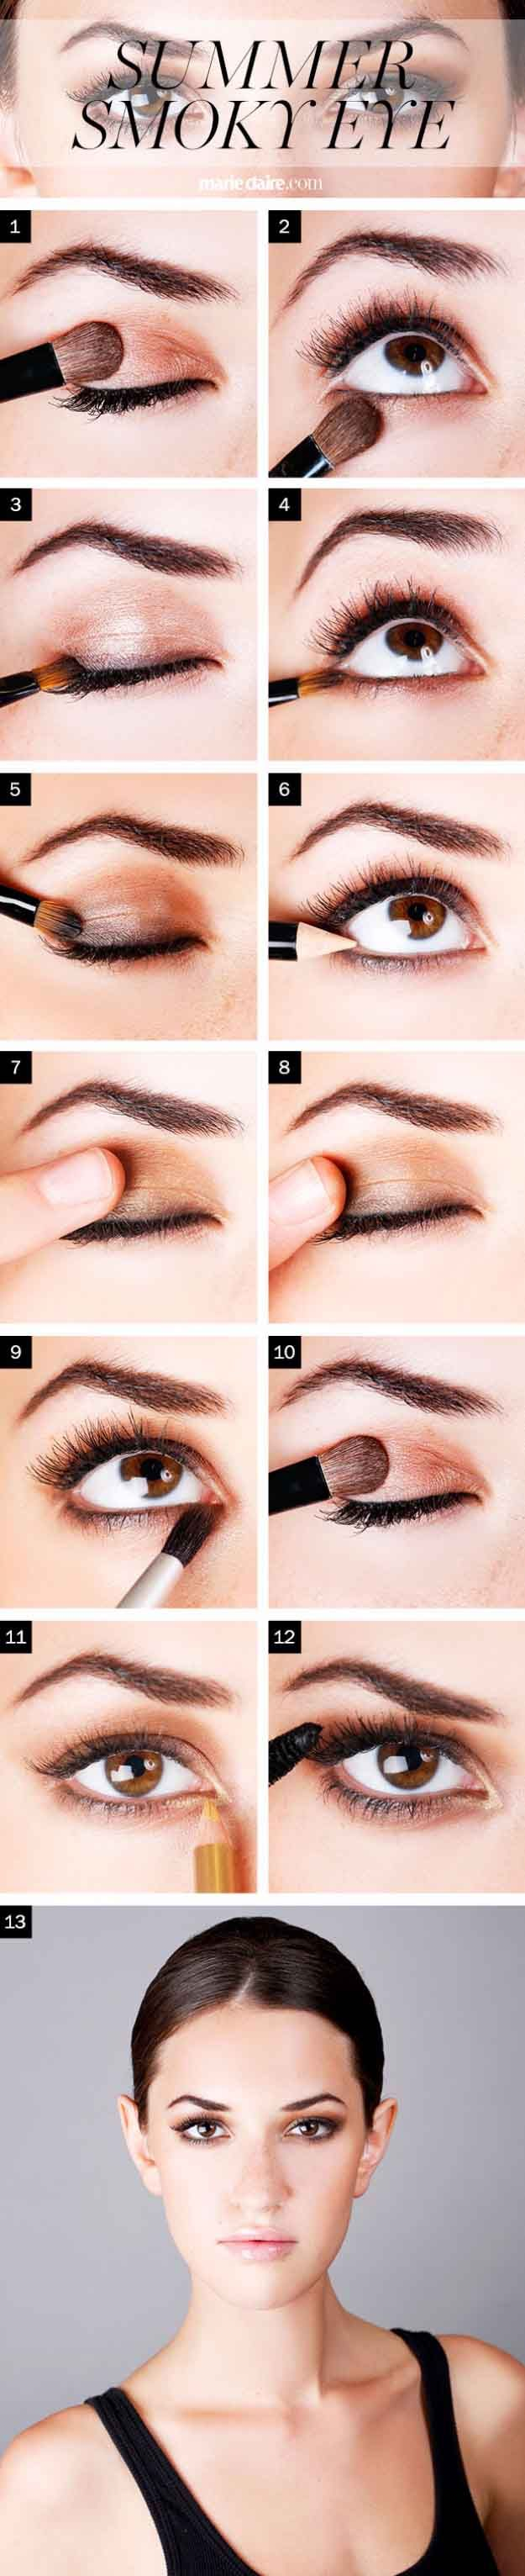 Awesome Makeup Tutorials for Summer - Summer Smokey Eyes- Simple and Easy Step By Step Tutorials for Light and Natural Makeup Looks - Youtube Videos with DIY Guides for Eyeshadow, Beach Waves, Foundation, Highlights, Eyebrows and All Sorts of Different Hair Styles - Check Out These Fun Make Up Tips Now! - thegoddess.com/makeup-tutorials-summer